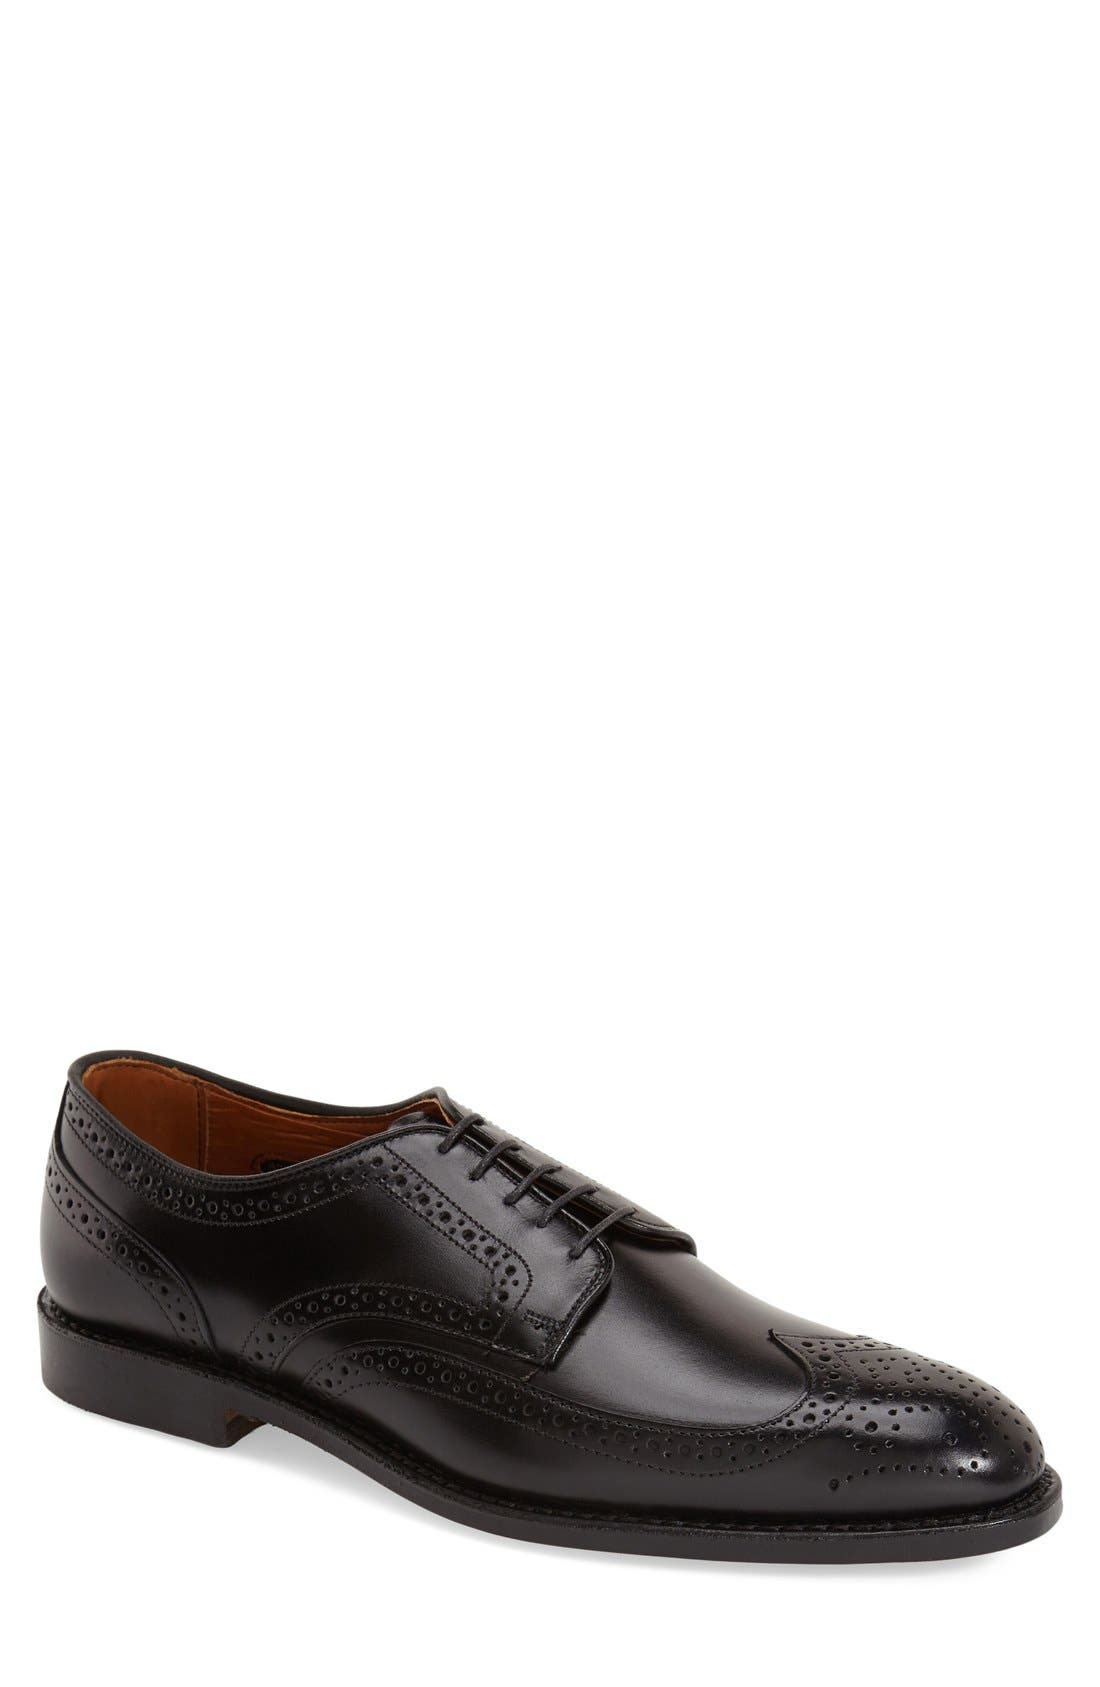 ALLEN EDMONDS 'Madison Park' Wingtip, Main, color, BLACK LEATHER